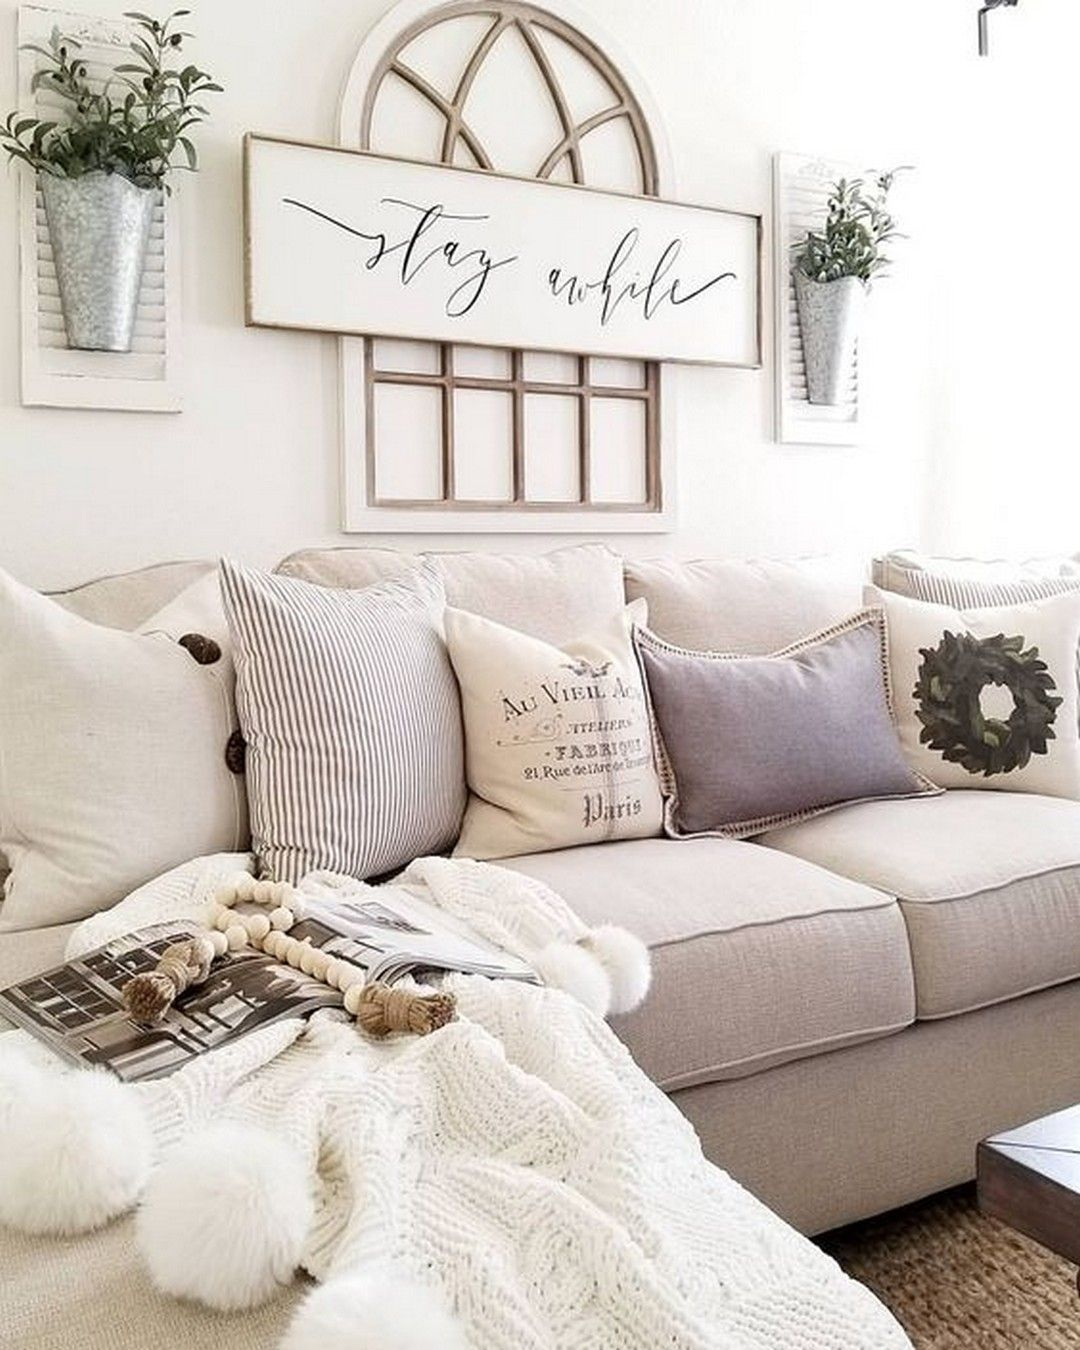 cheap and easy diy ideas desain rumah minimalist home furniture bedroom curtains ceilings interior living room also rustic arch mirrors with hanging planters modern farm house rh pinterest